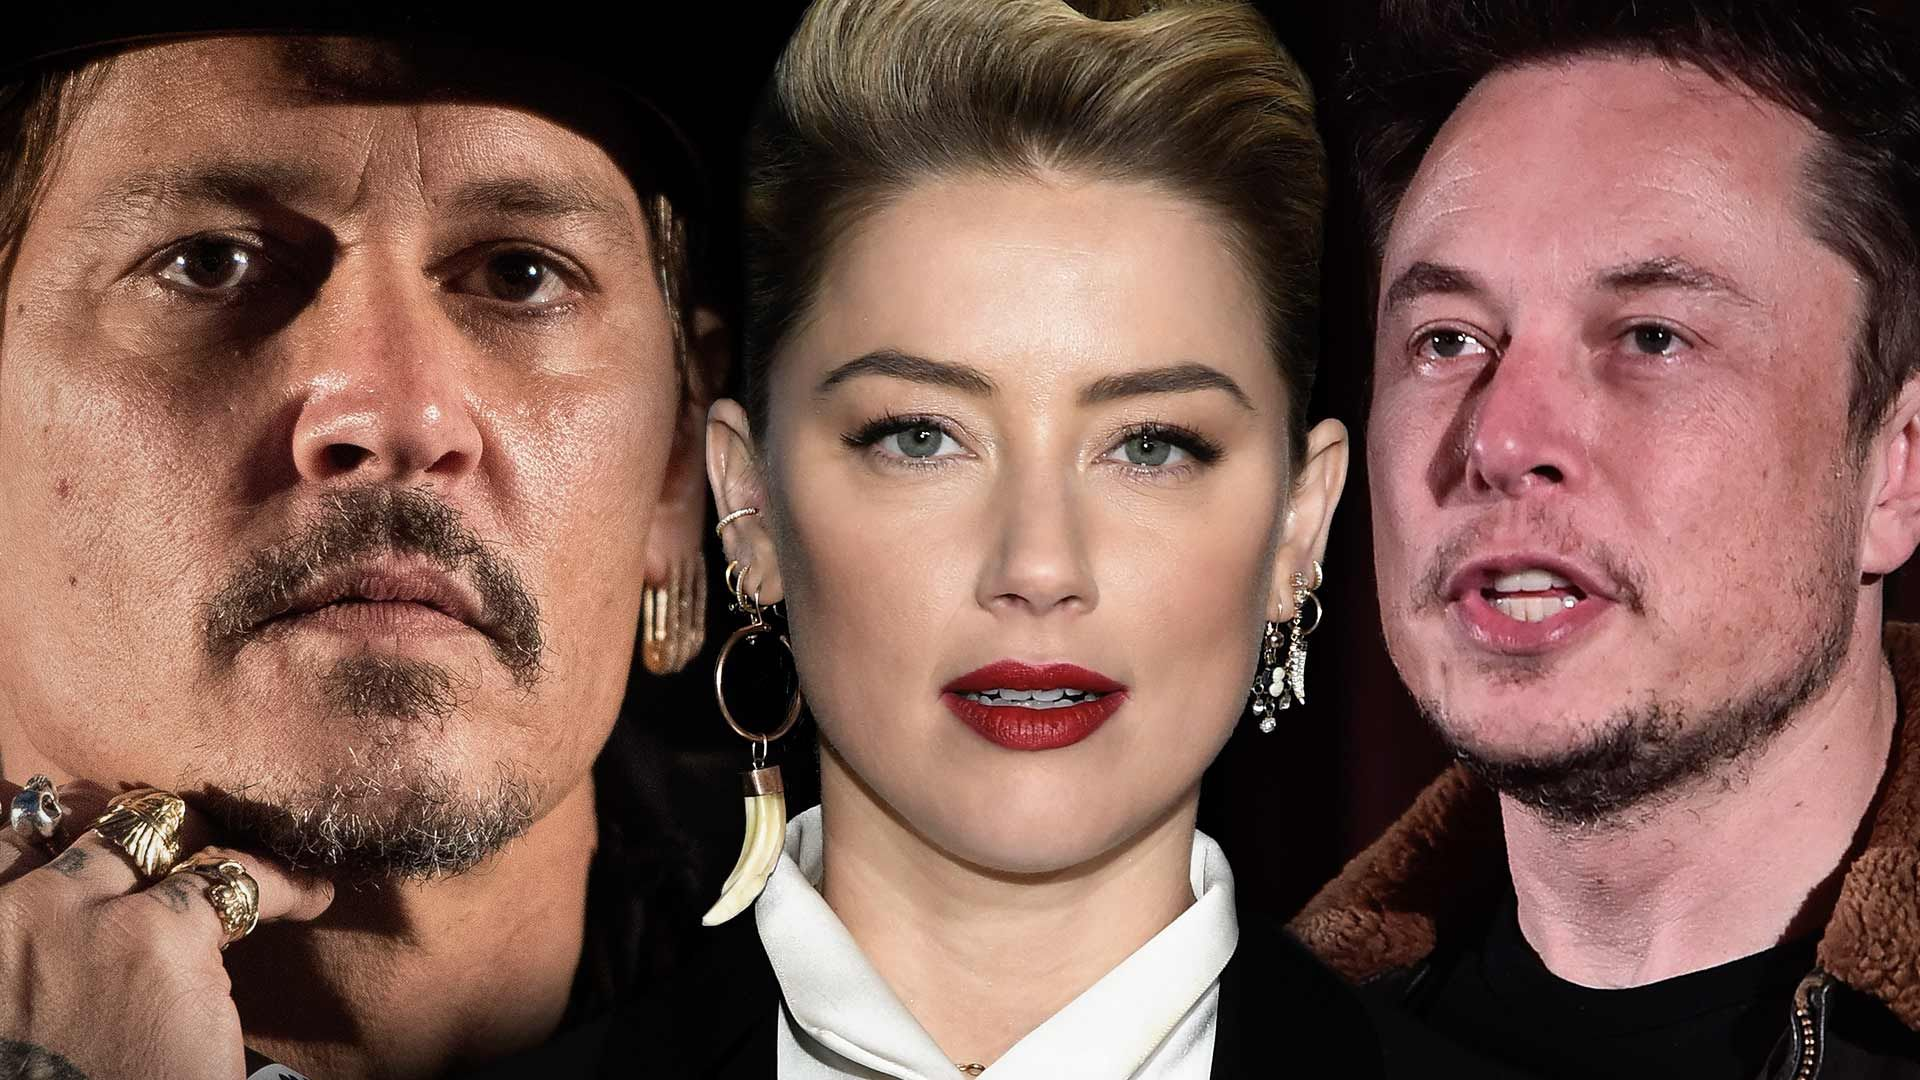 Elon Musk Challenges Johnny Depp to A Fight After Allegations Of Affair With Amber Heard